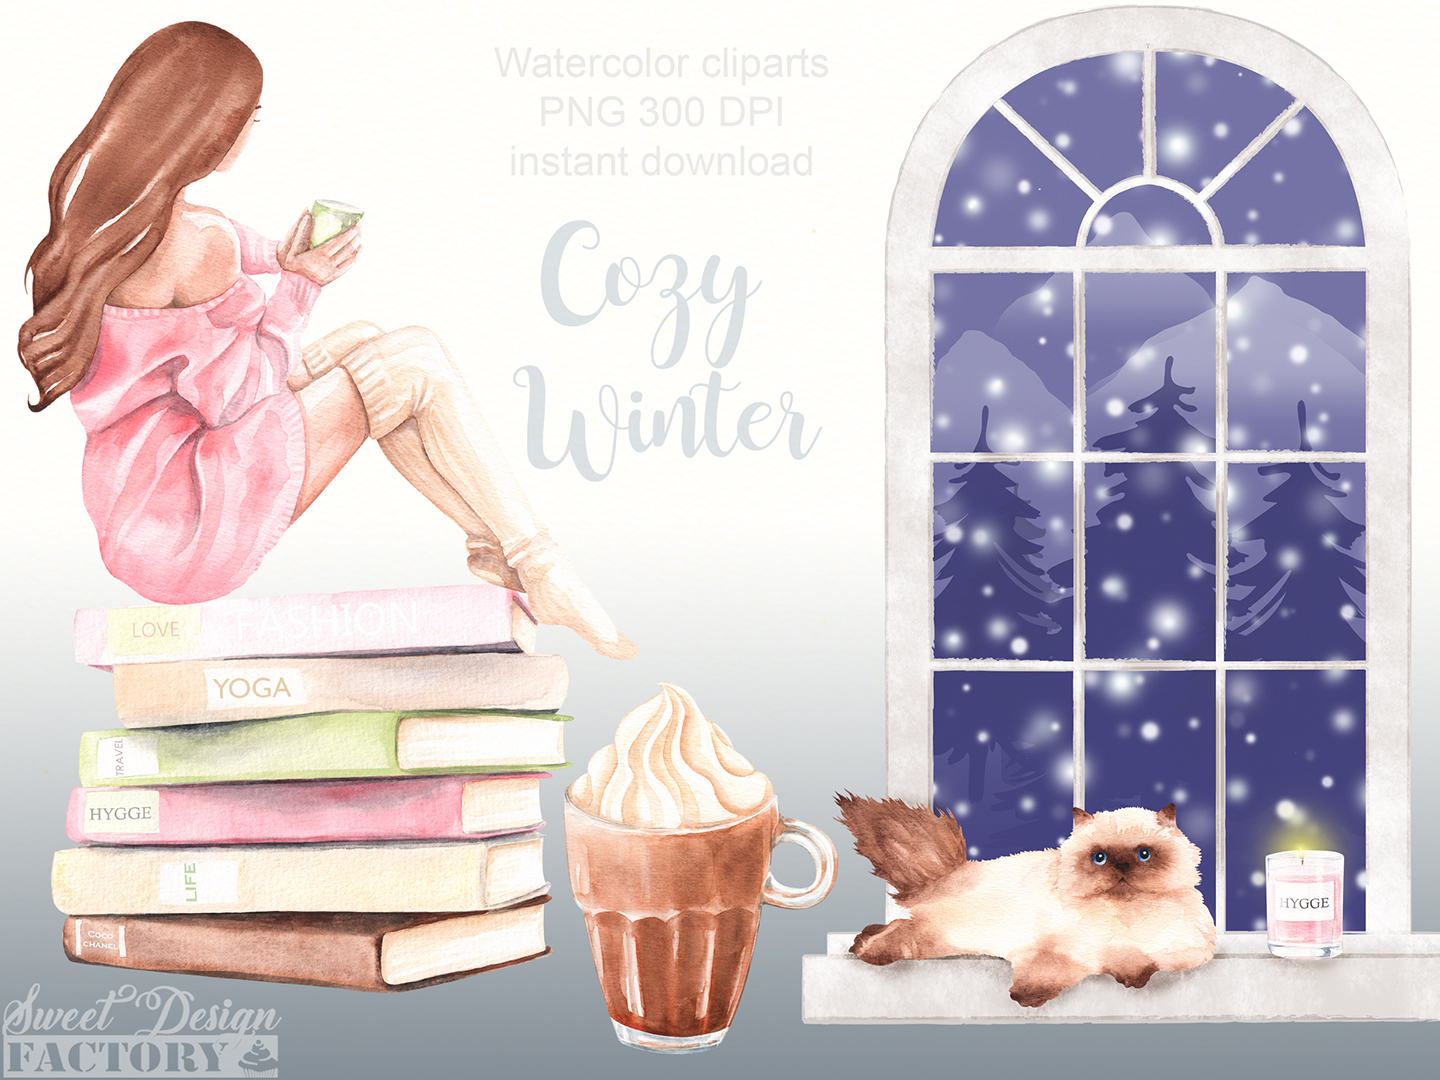 Cozy winter clipart. example image 2